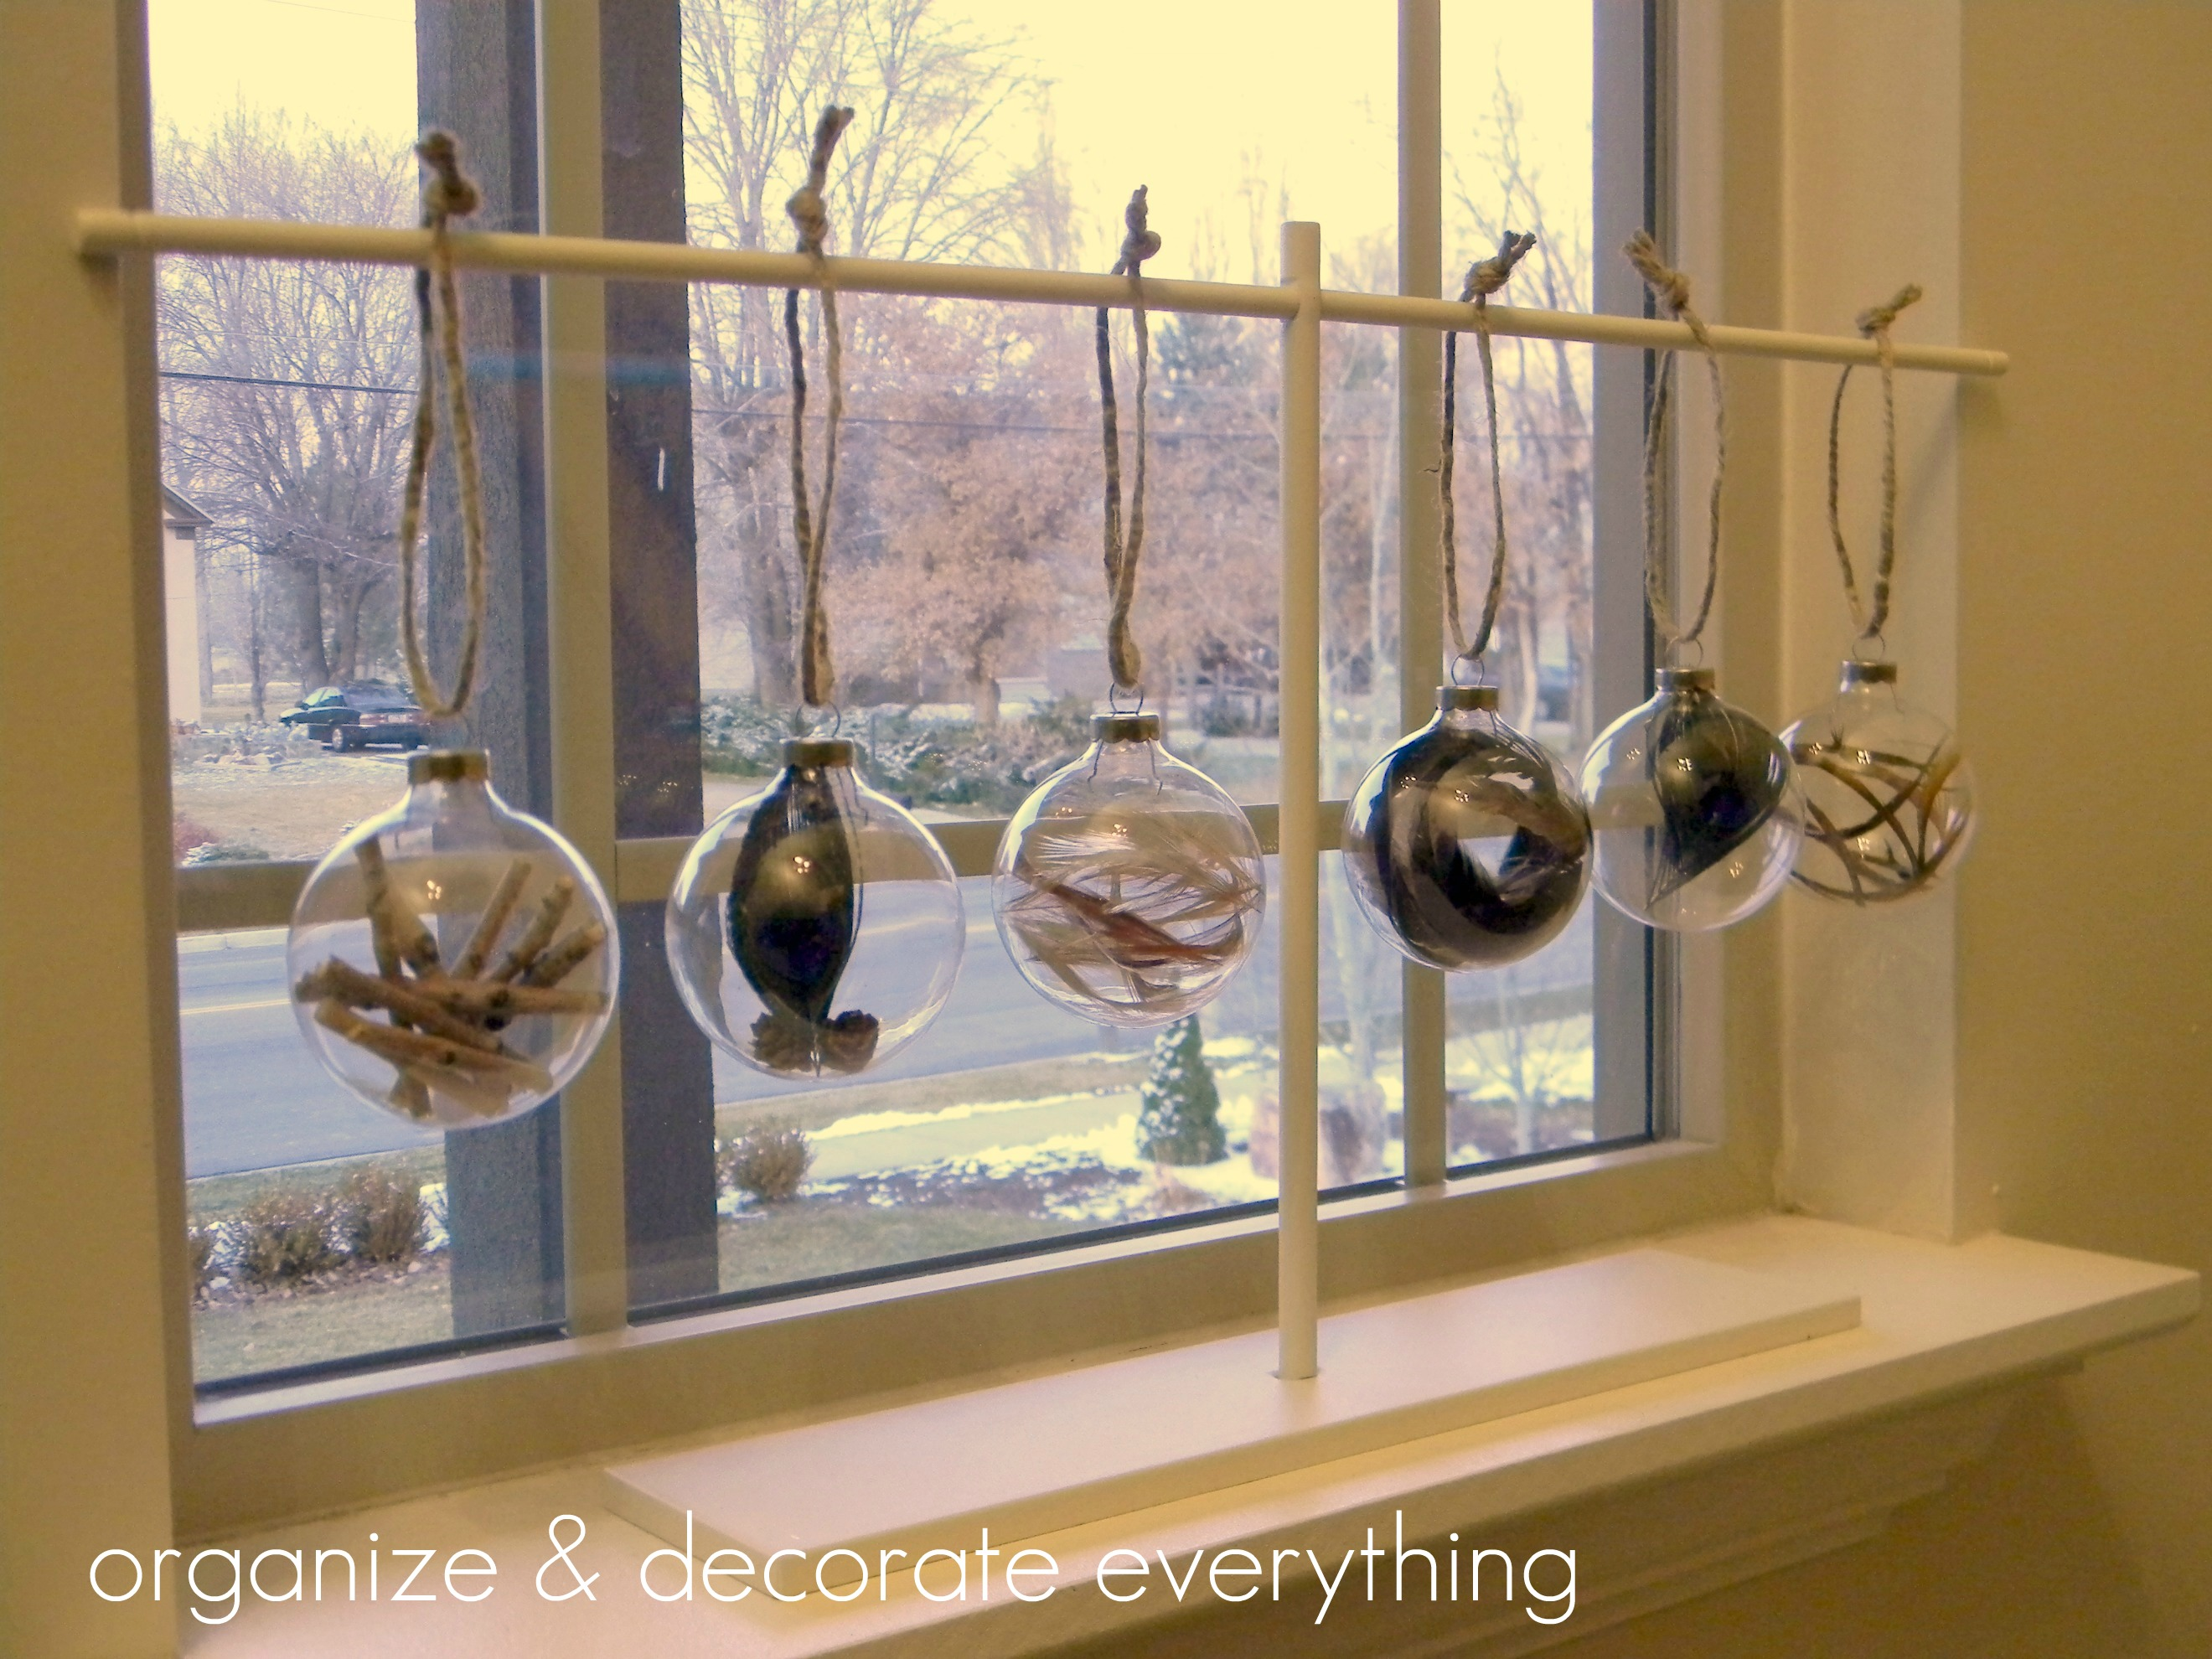 Classroom Ornament Ideas ~ Filled ornaments organize and decorate everything